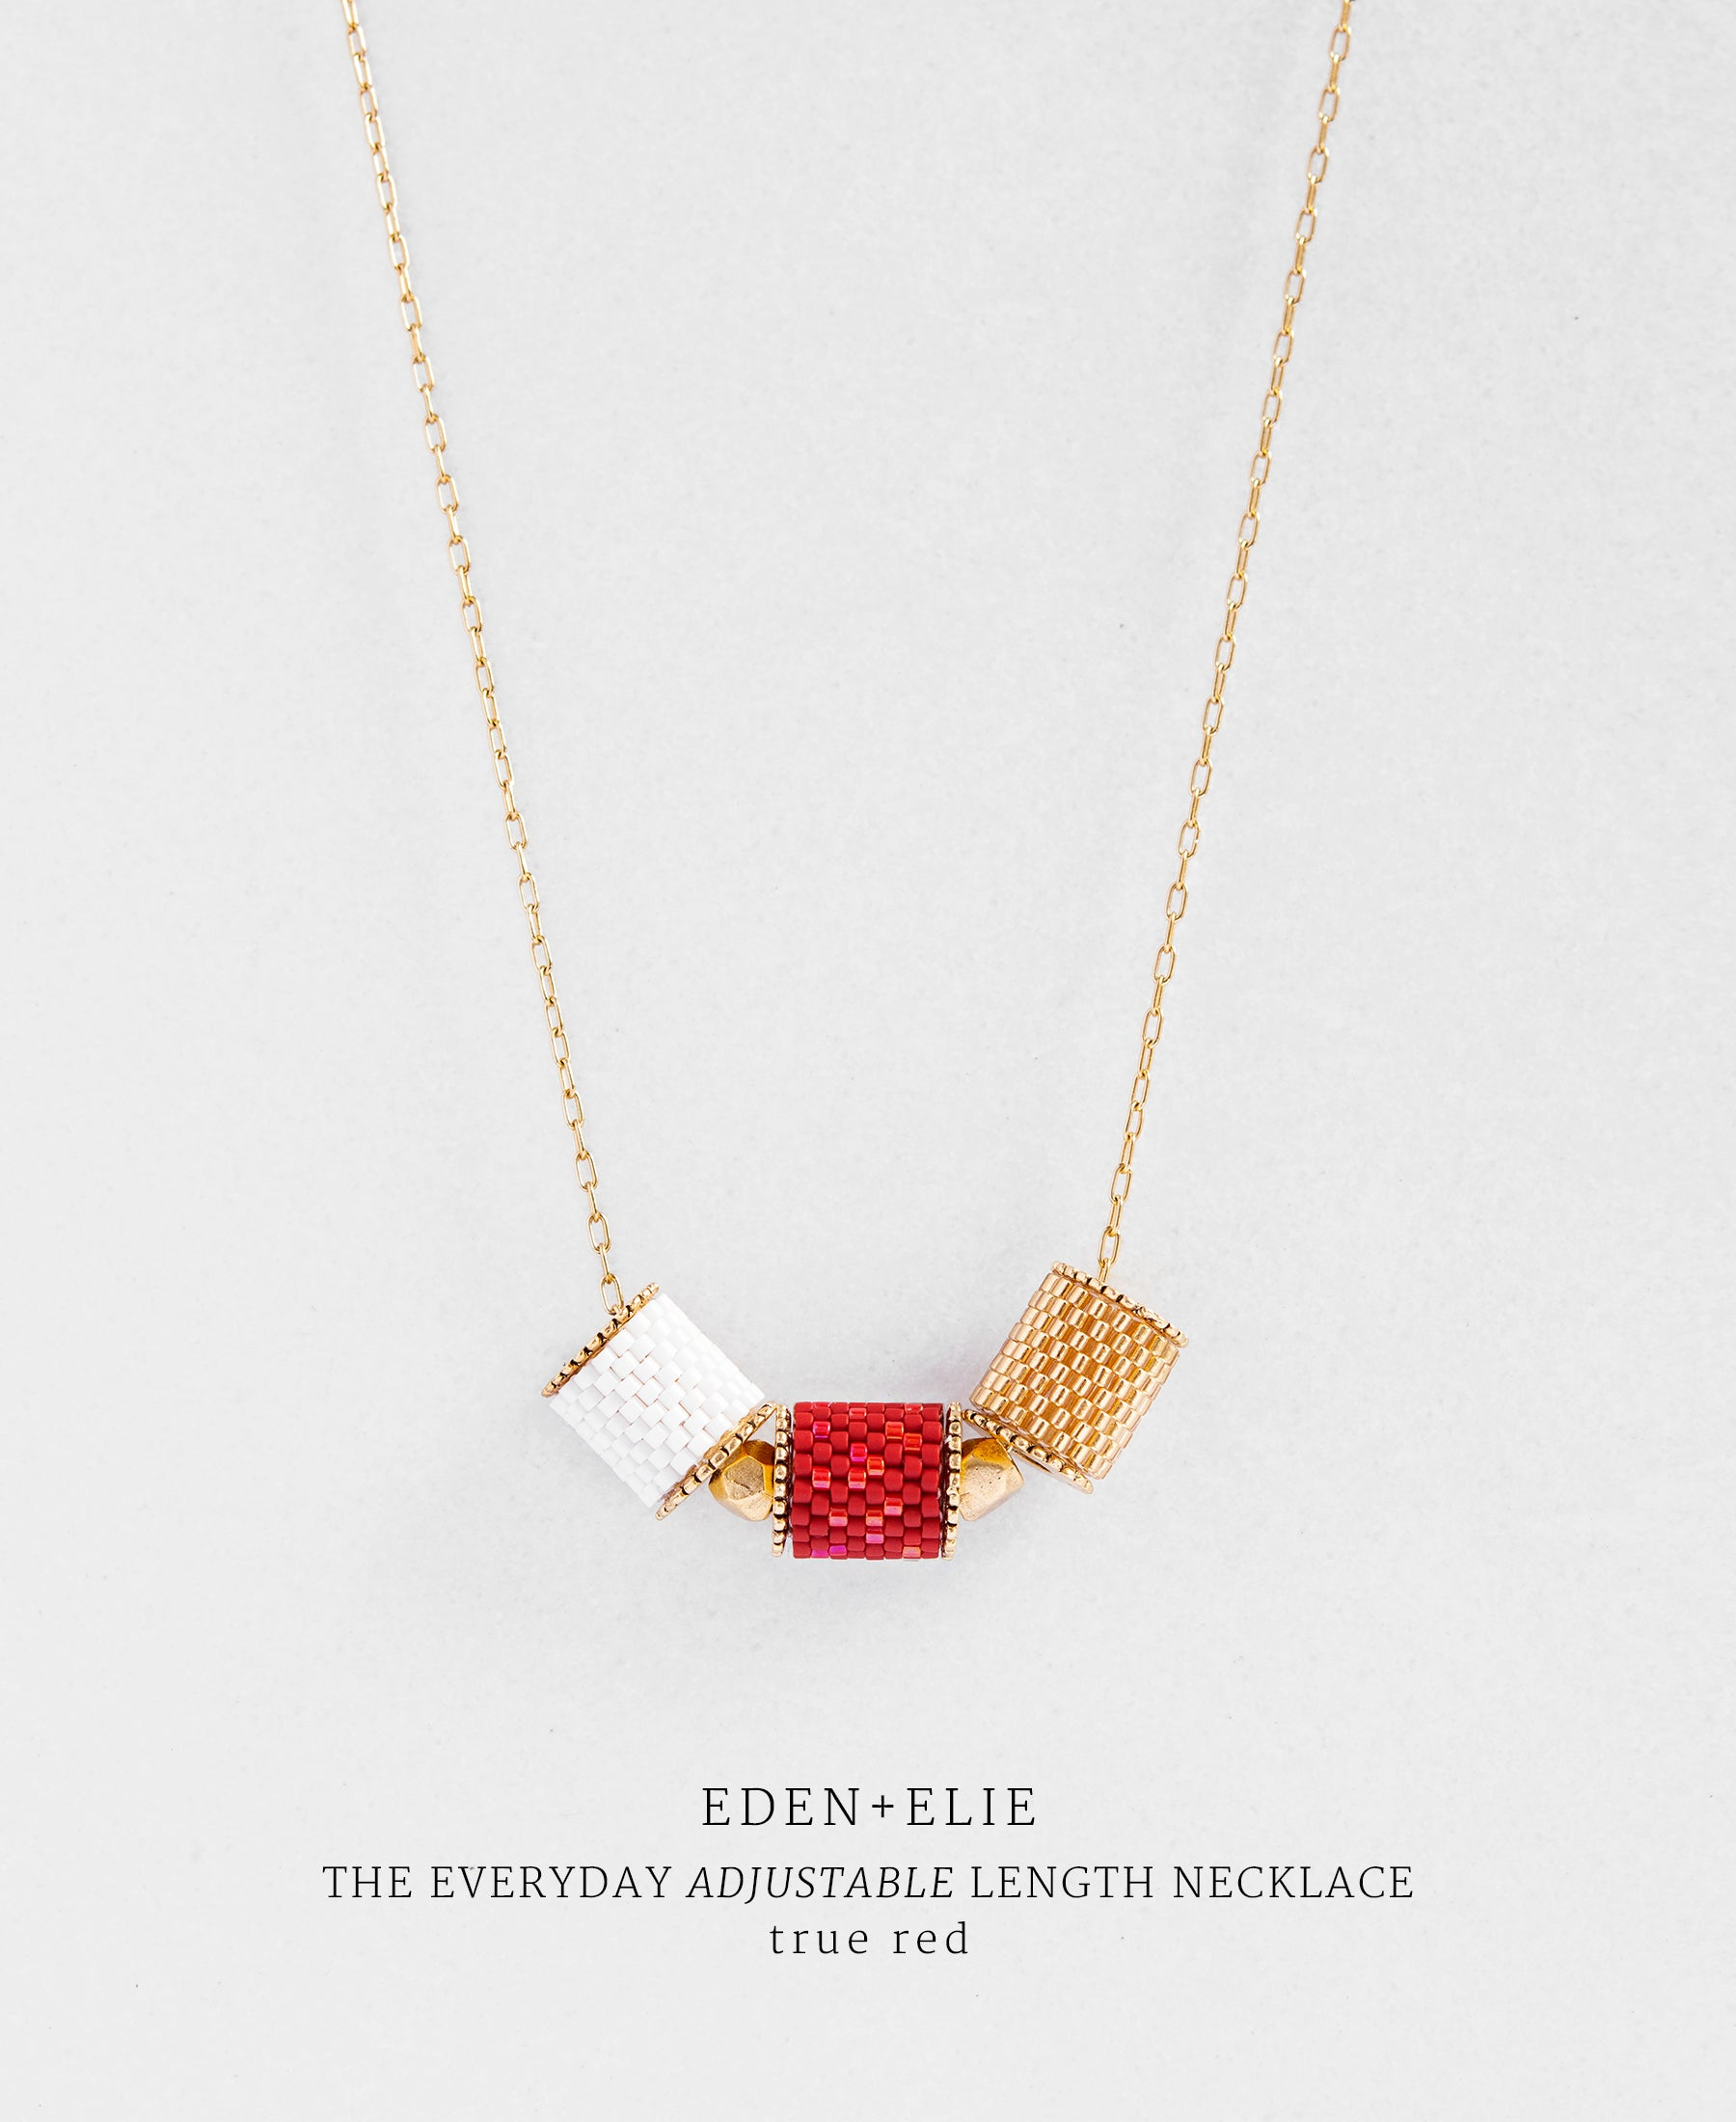 EDEN + ELIE Everyday adjustable length necklace - true red